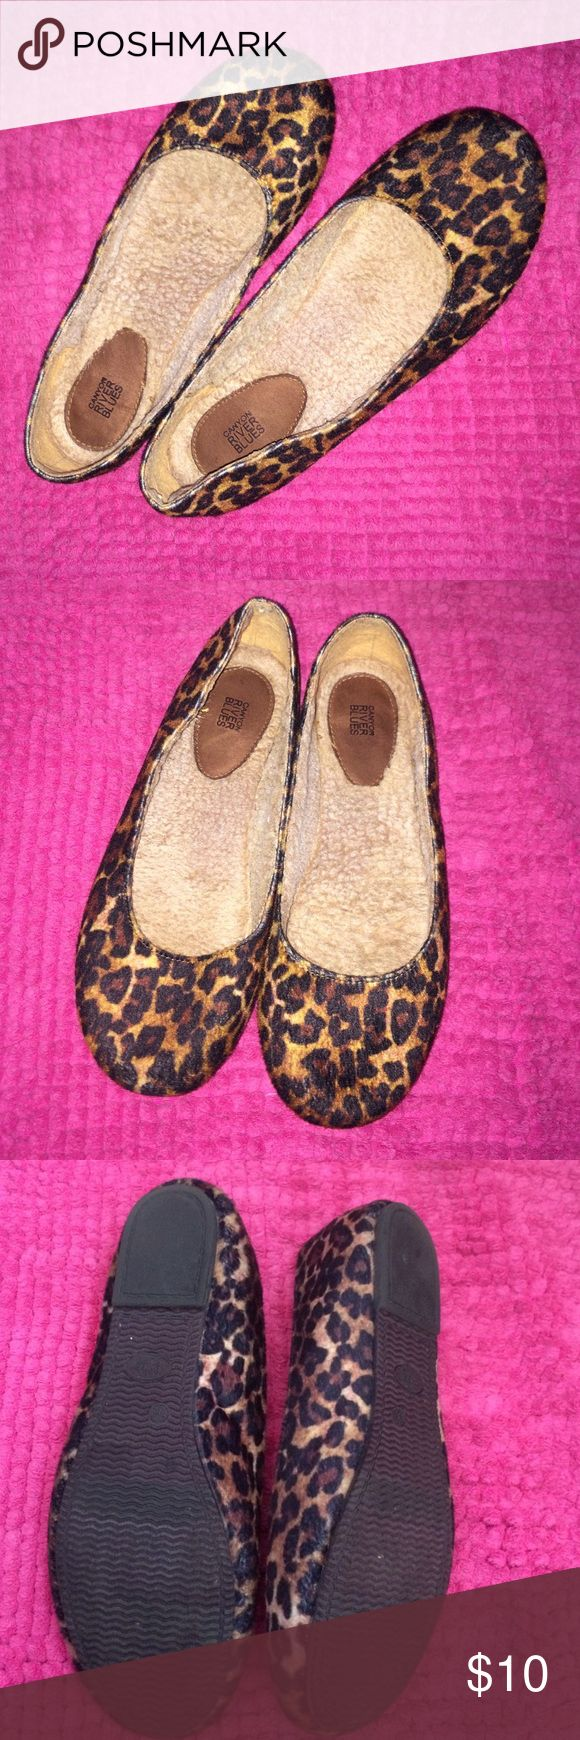 ✨ EUC cheetah flats✨ Soft material cheetah flats! Lined inside with faux fur! Size 6.5! Shoes Flats & Loafers